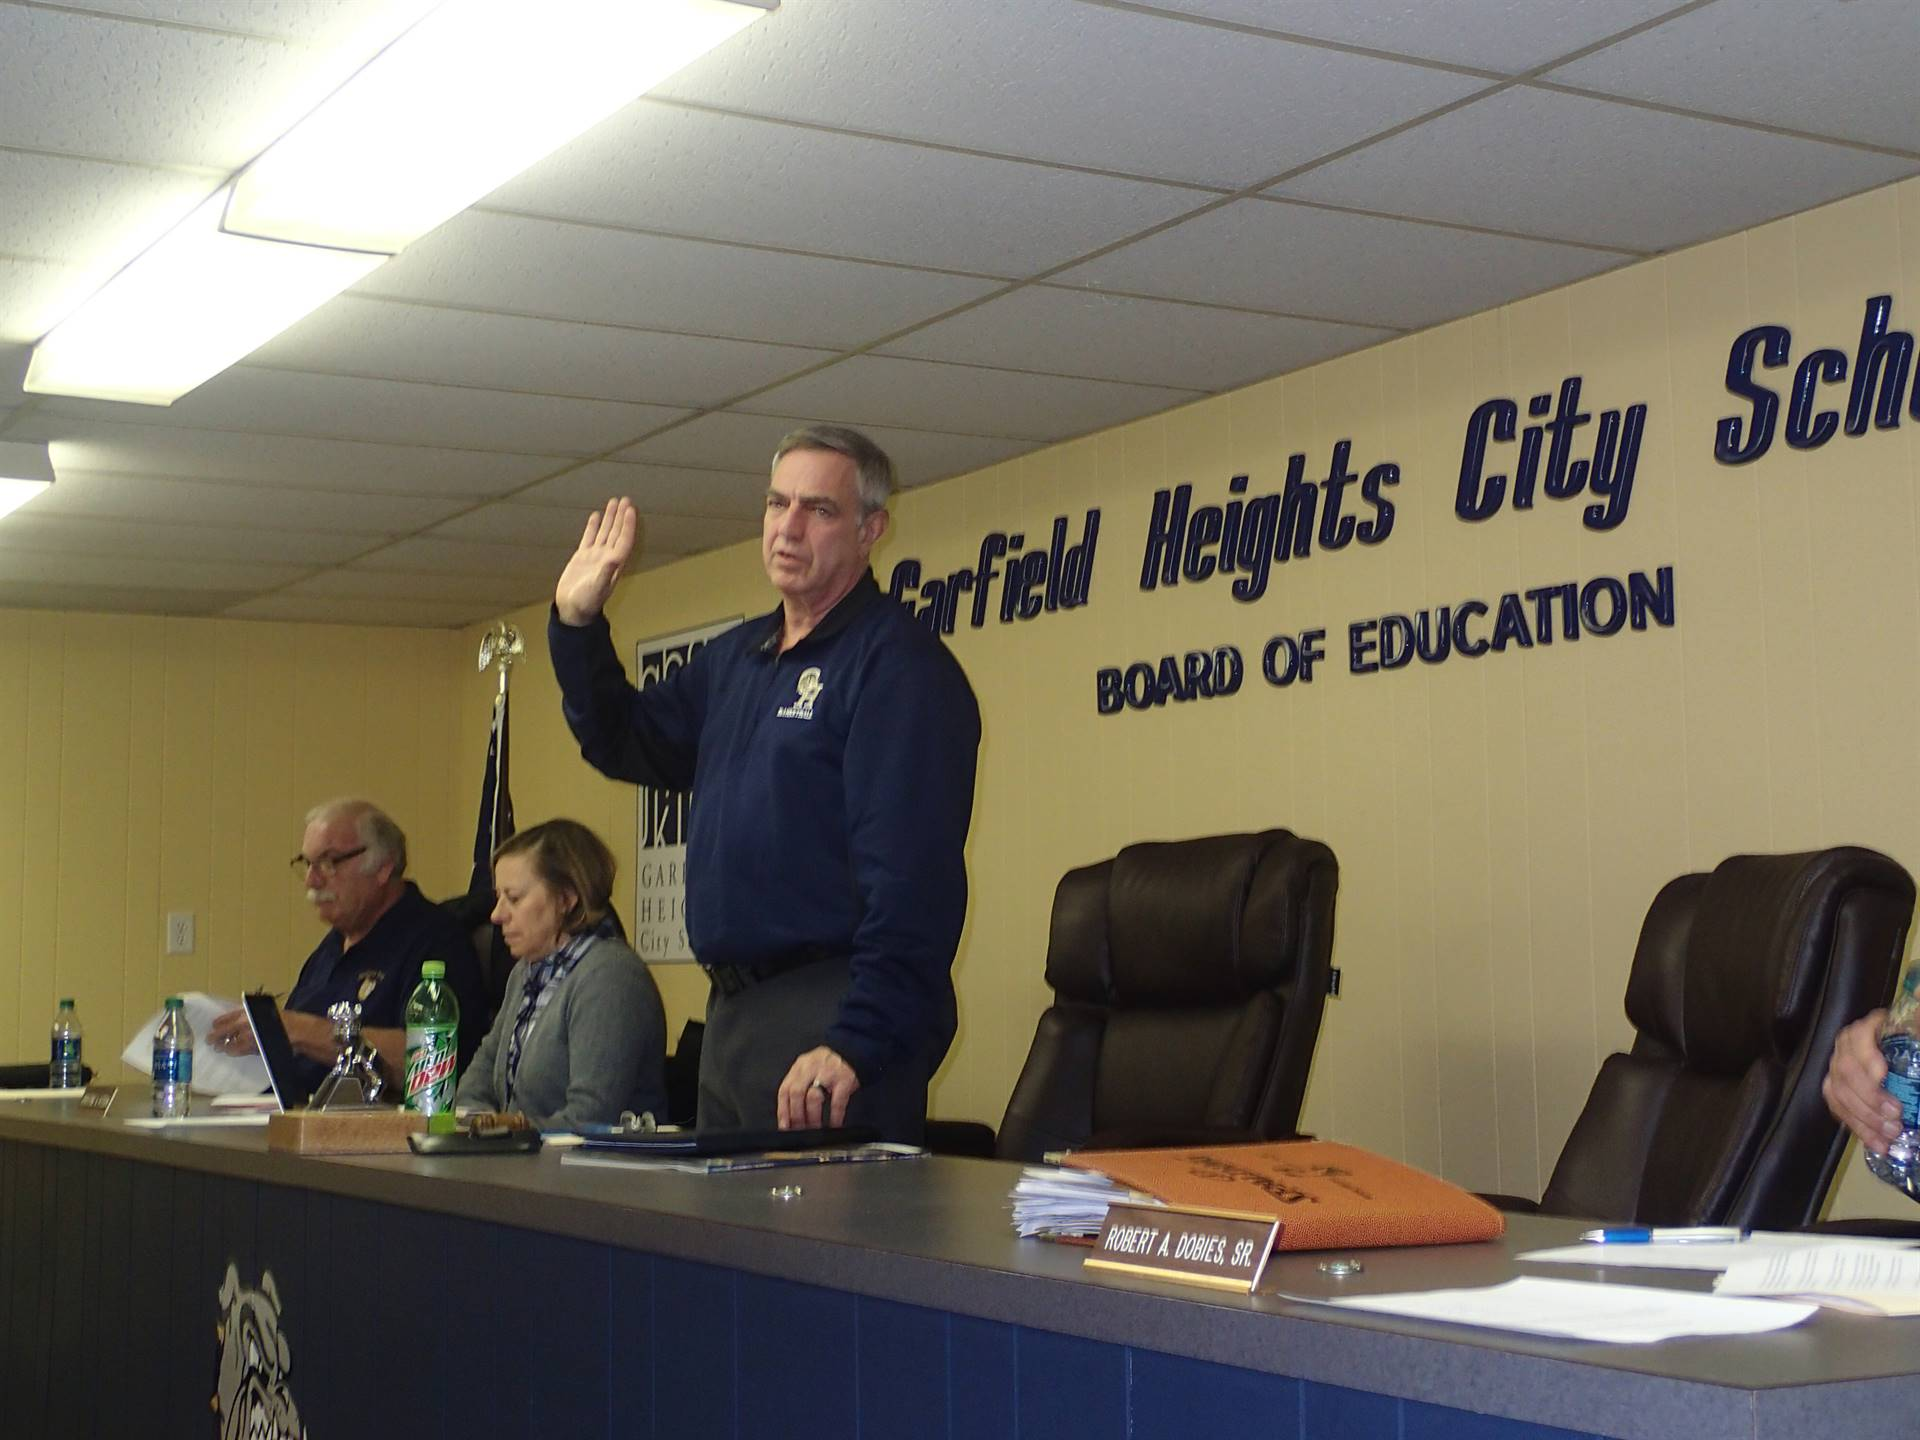 Gary Wolkse during the swearing in ceremony for the board of education